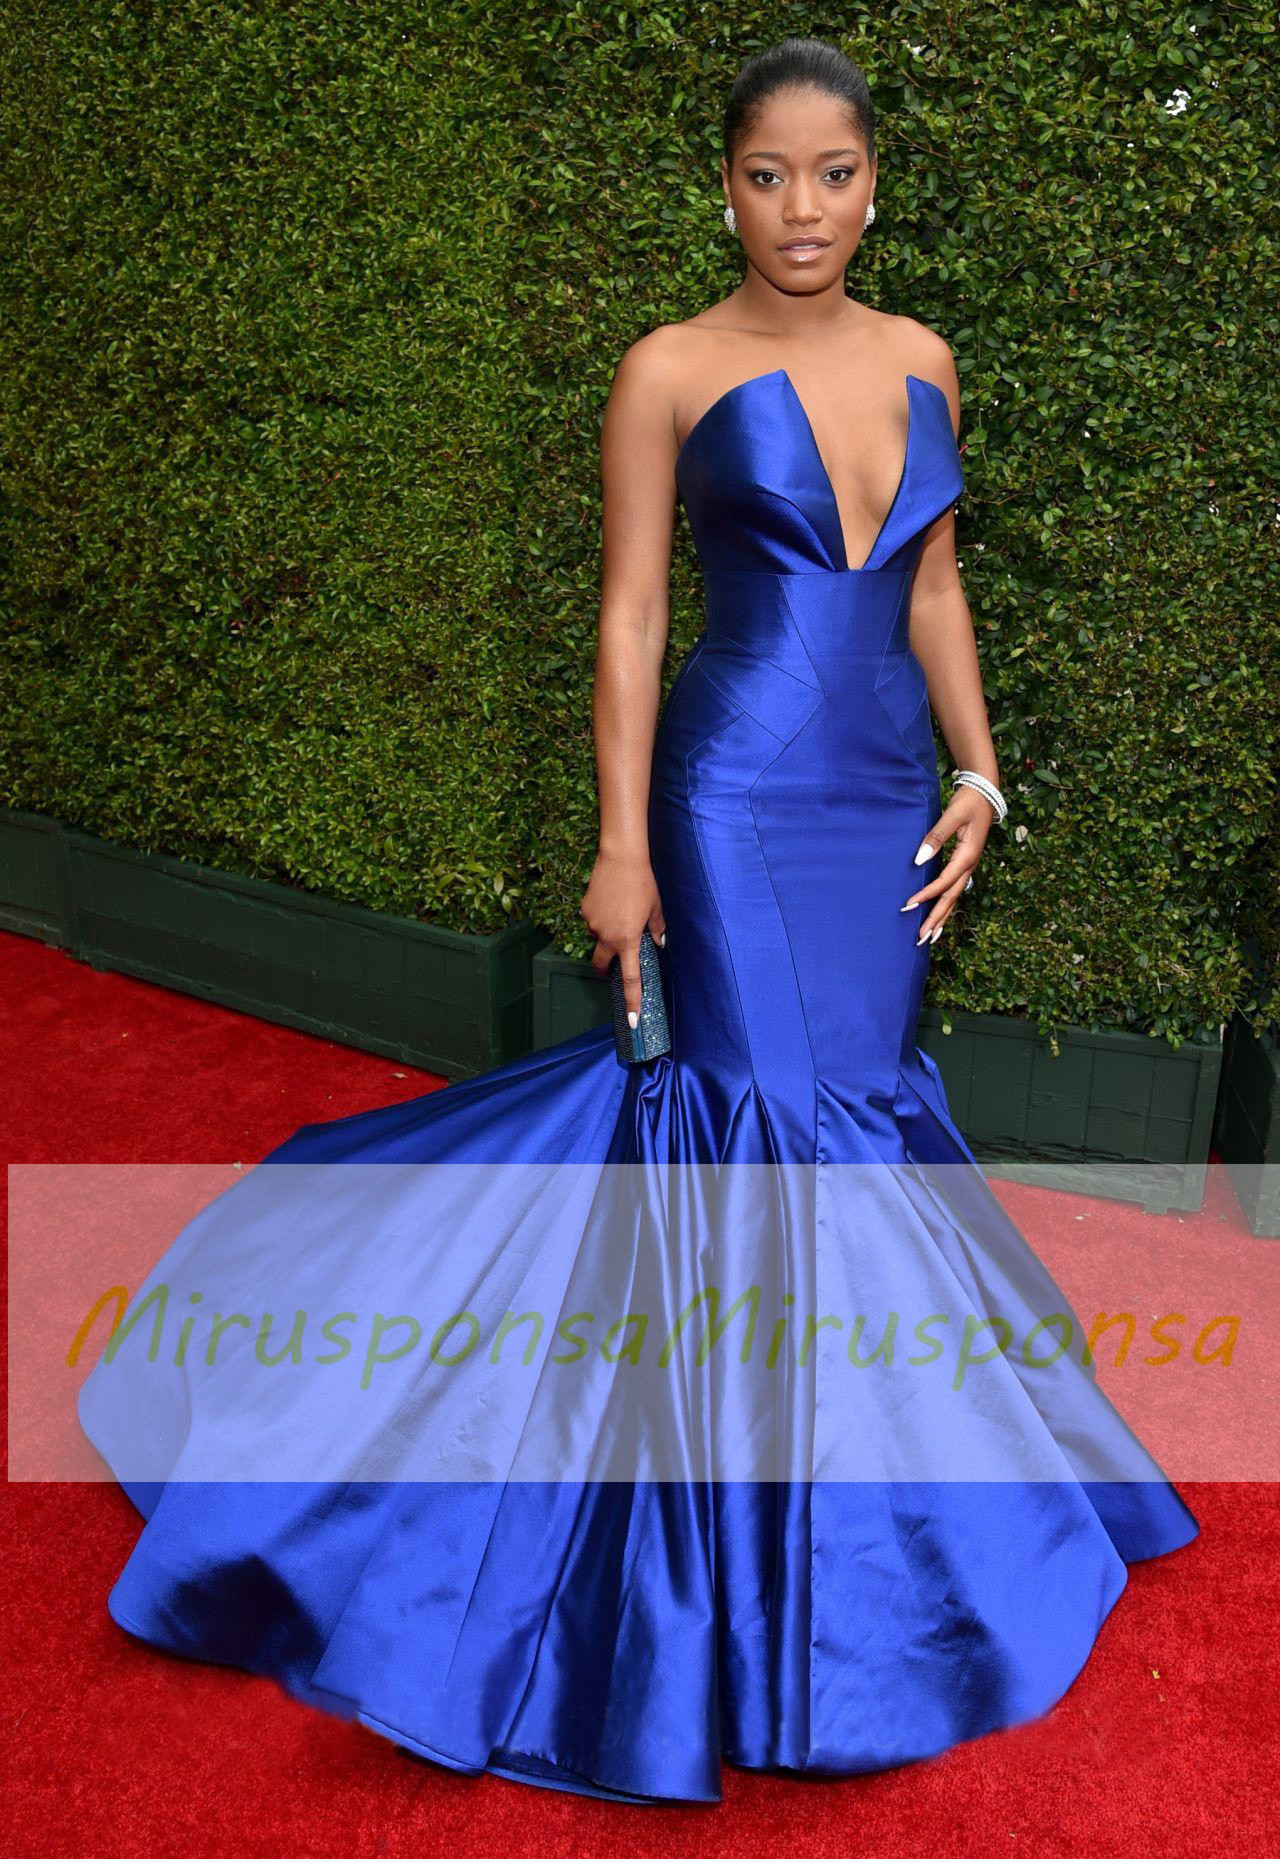 Mirusponsa Red Carpet Dresses Wedding Guest Dress Royal Blue